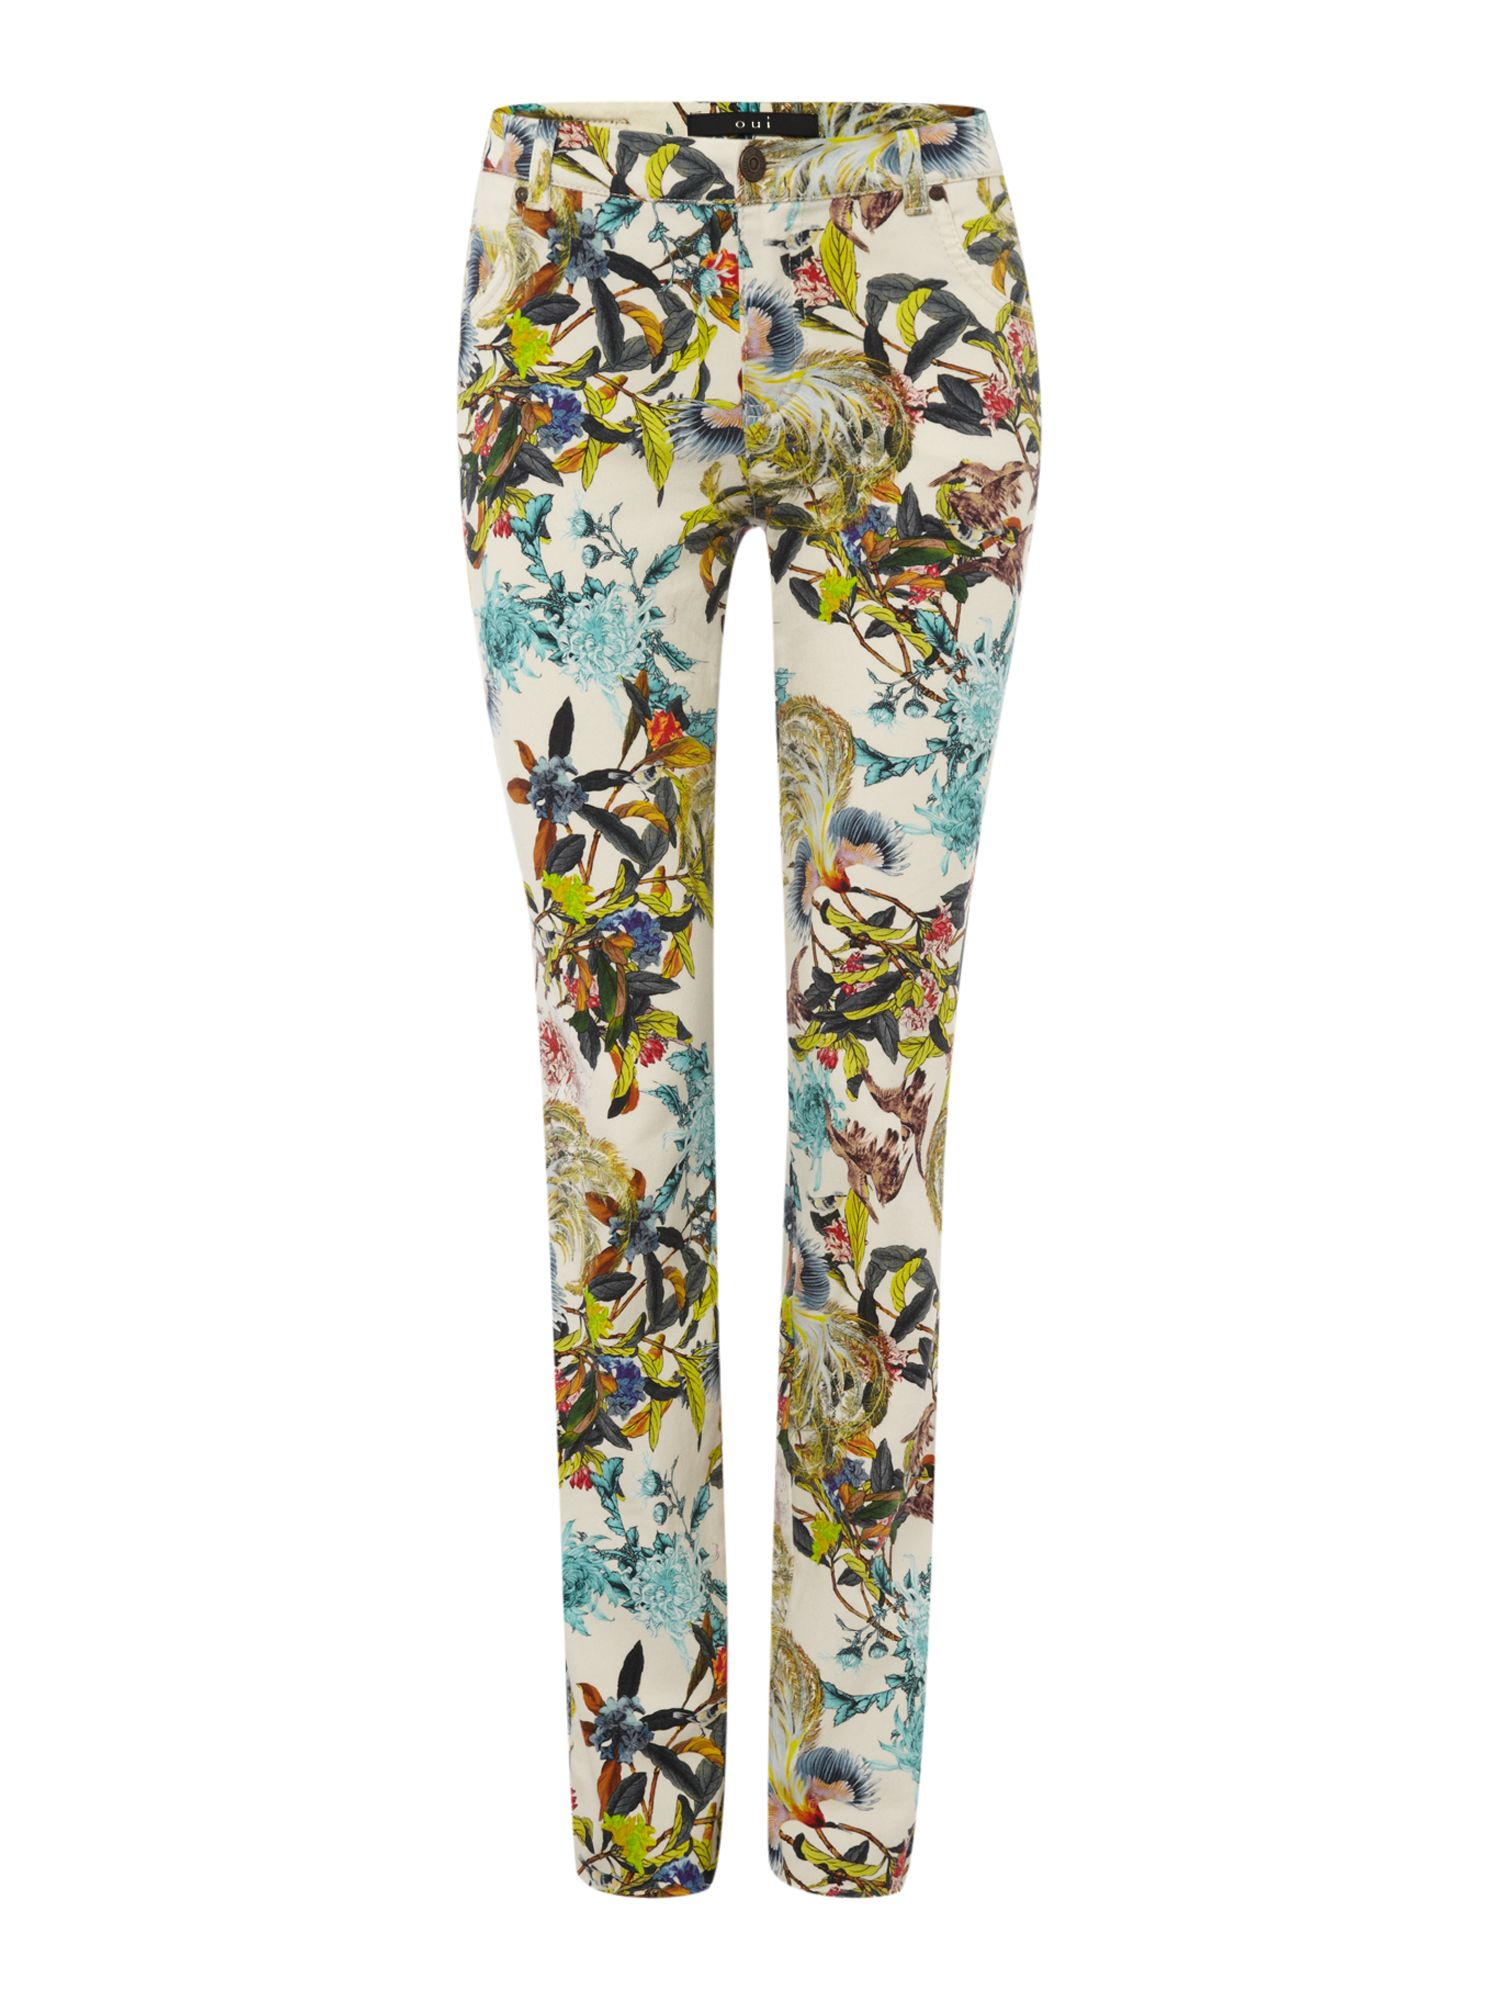 Tropical bird print jean